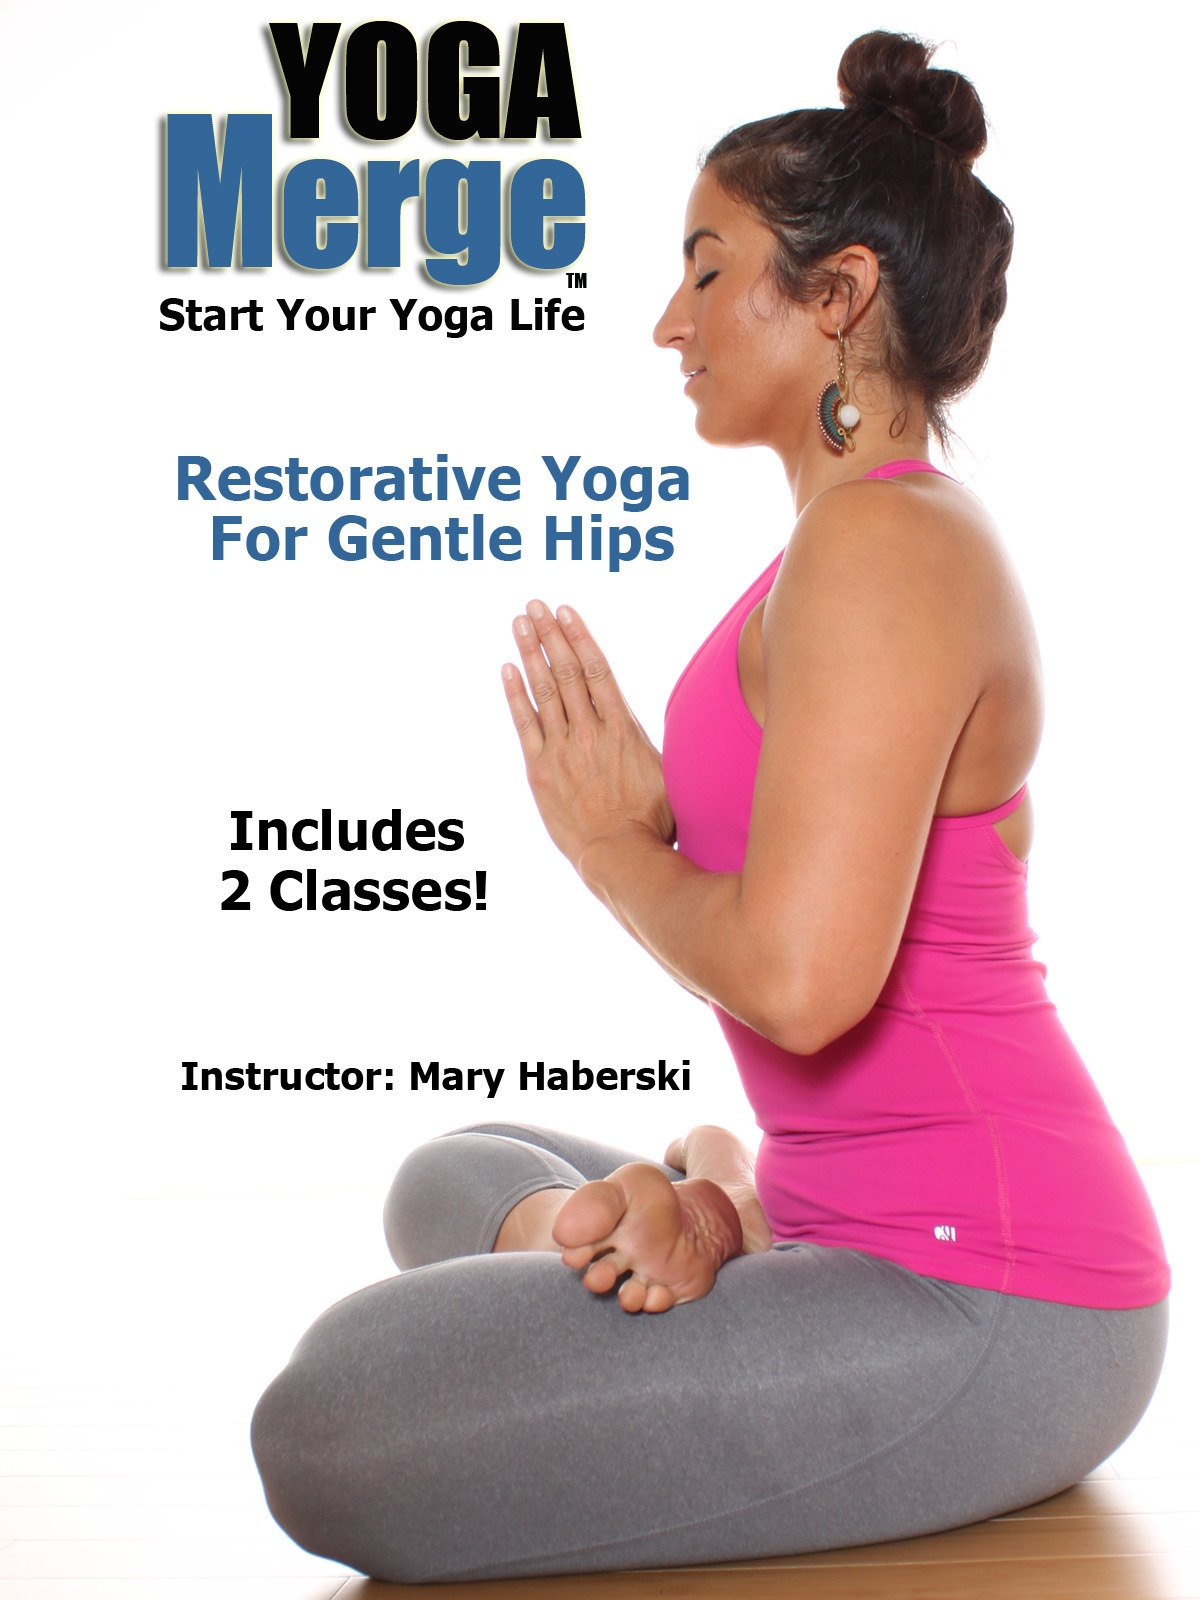 Amazon.com: Watch Restorative Yoga For Gentle Hips | Prime Video